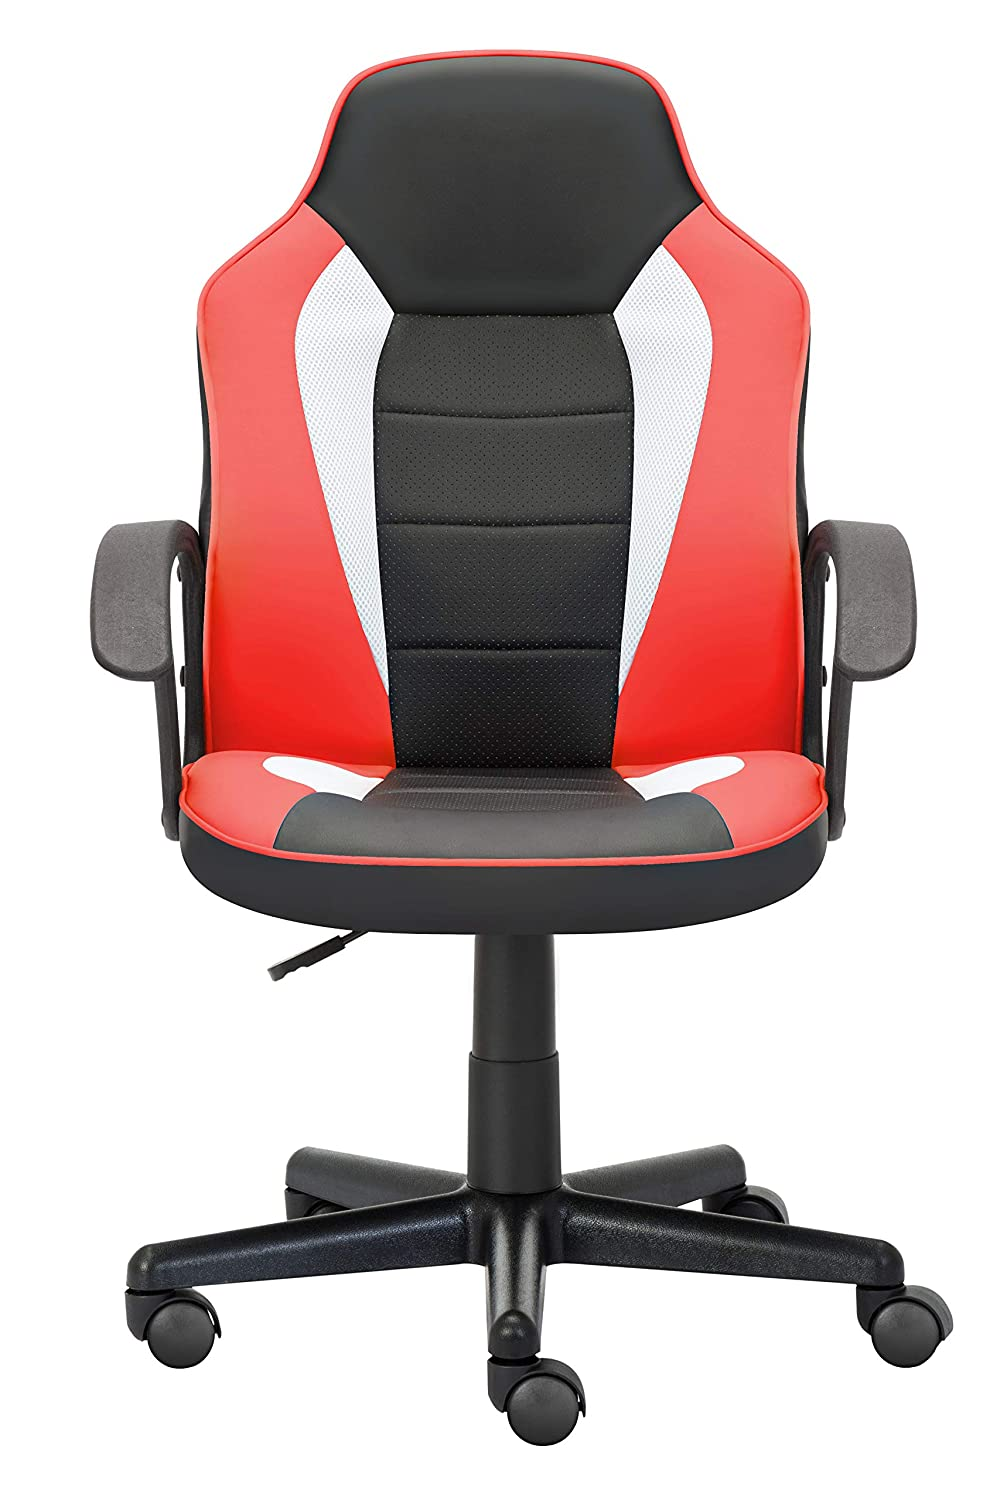 Blue 360 Degree Swivel Adjustable Ergonomic Chair IntimaTe WM Heart Small Desk Gaming Chair for Bedroom with Ergonomic Design /& Back Support